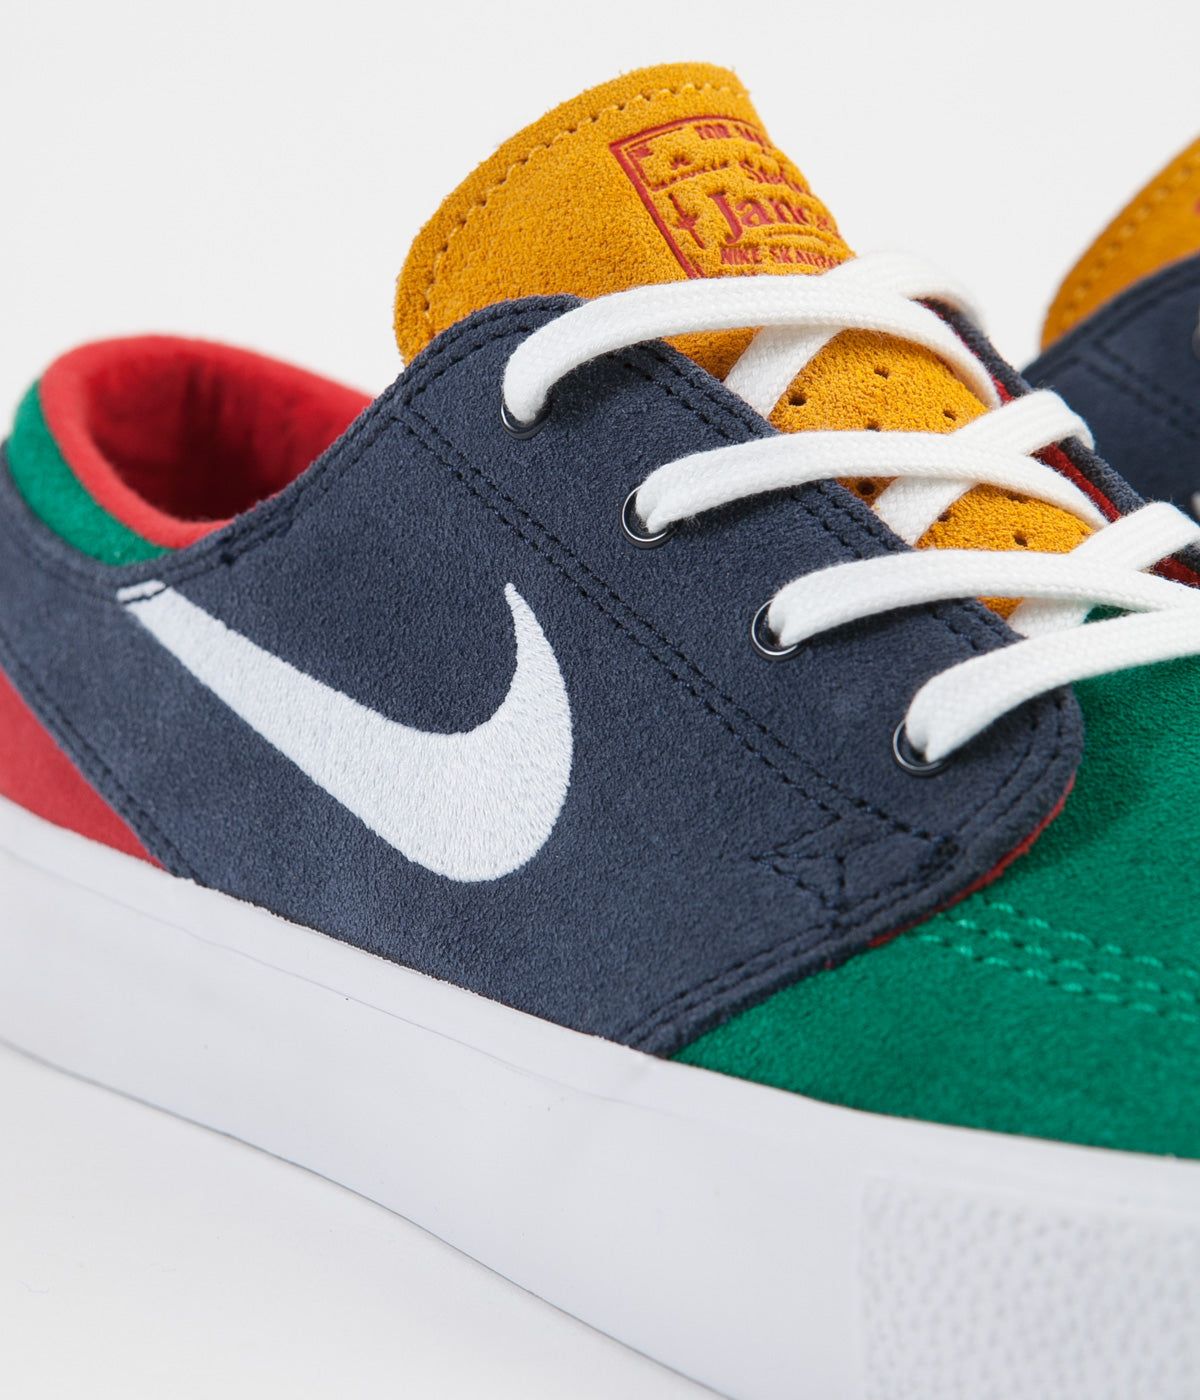 1ccca433b ... Nike SB Janoski Remastered Shoes - Lucid Green / White - Obsidian ...